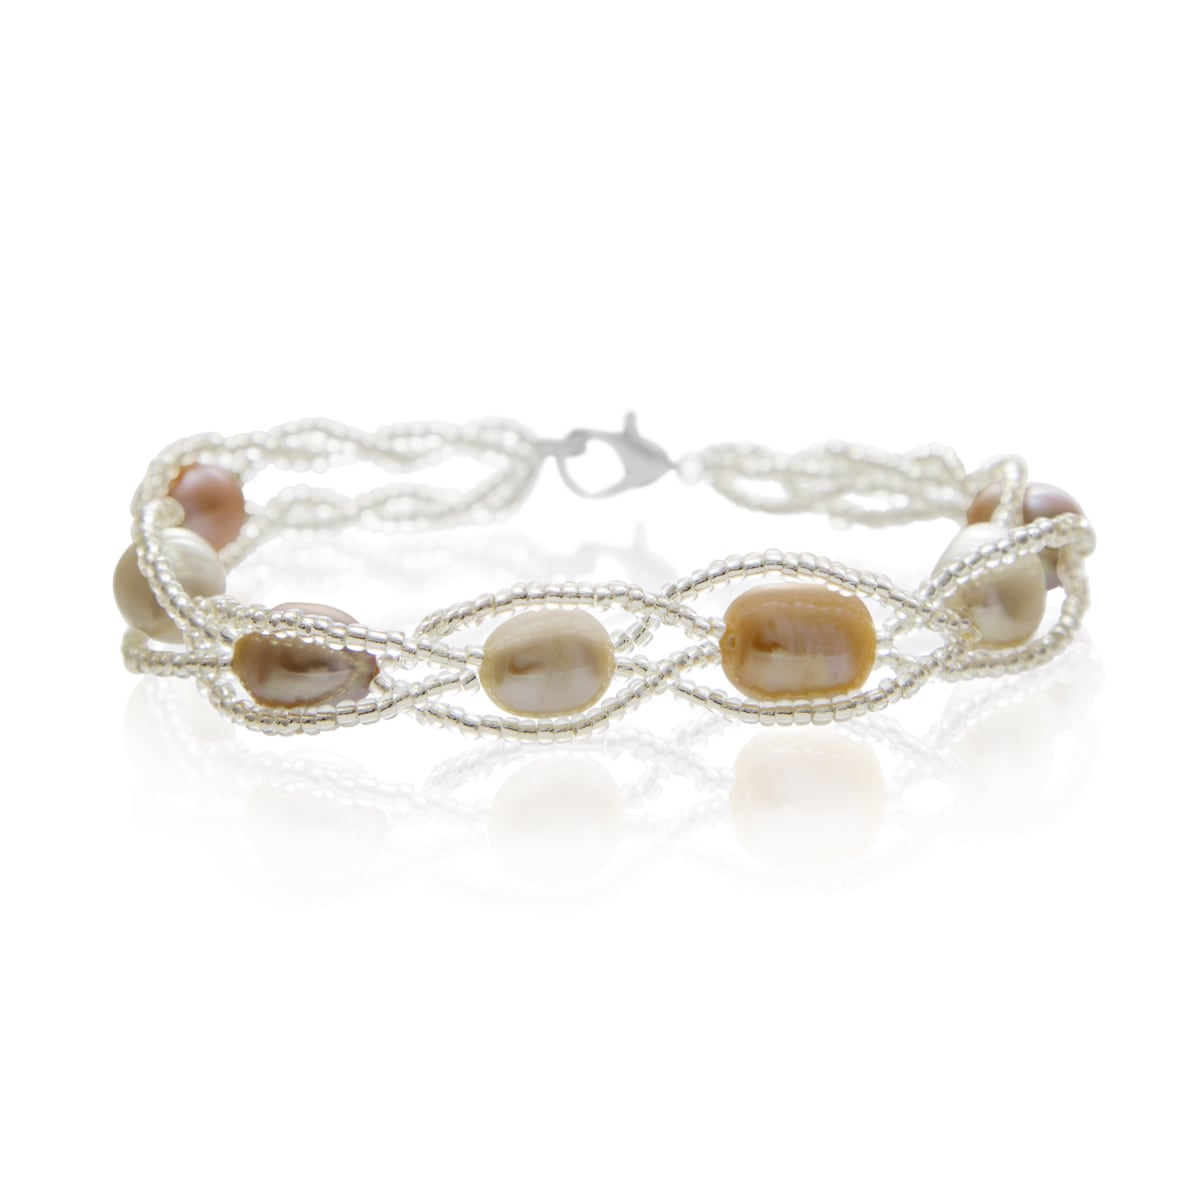 The 8mm Freshwater Cultured Pearl and Braided Bead Bracelet travel product recommended by Edna Campos on Lifney.